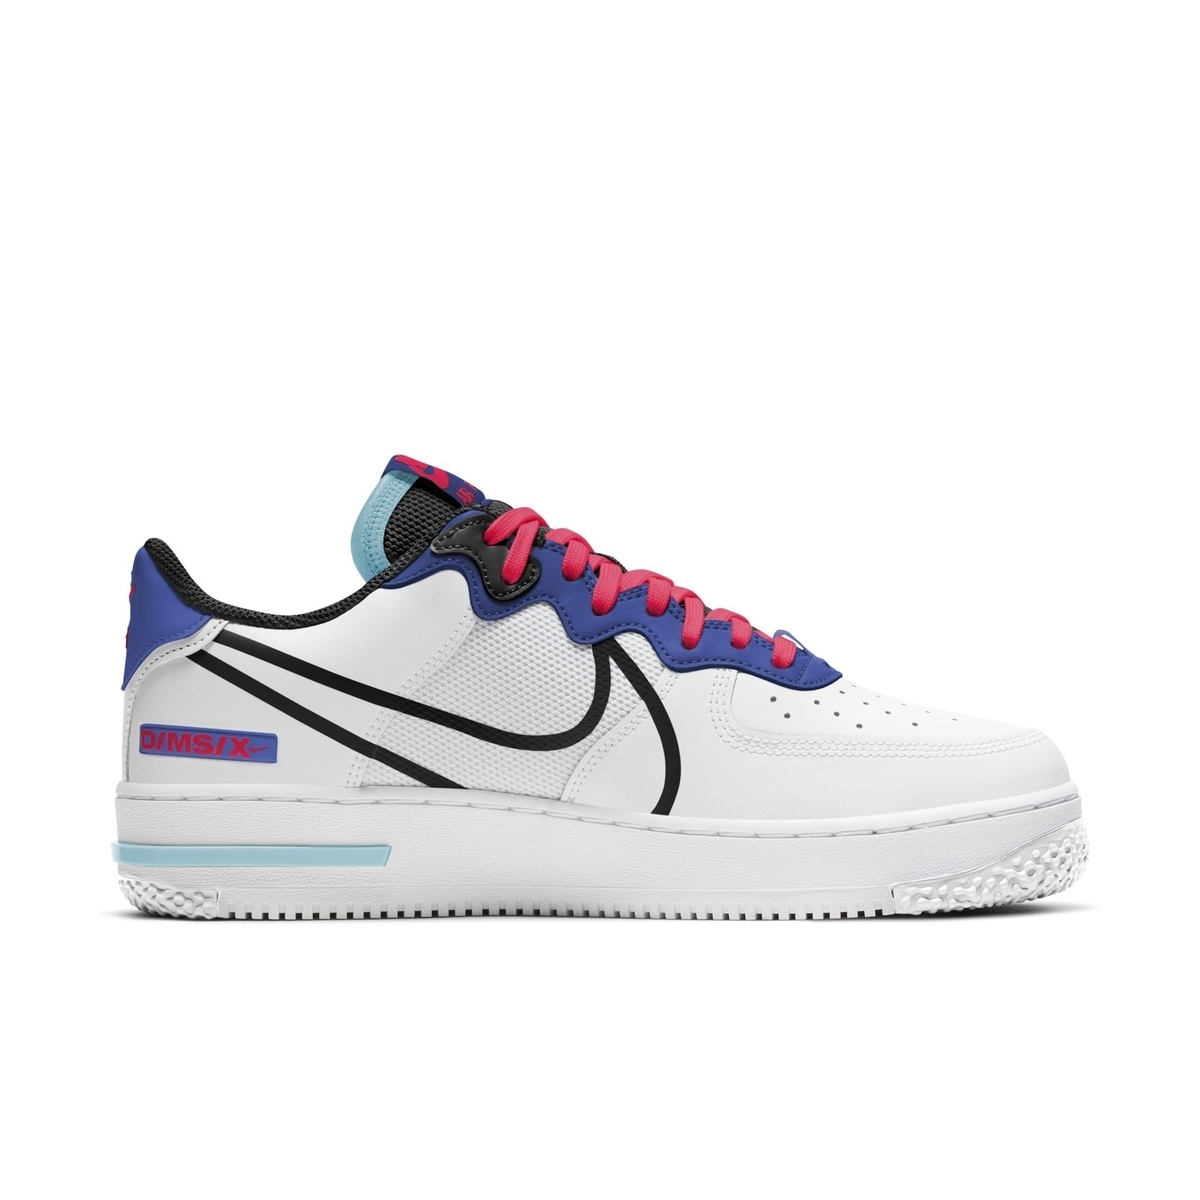 "Take a look at the upcoming Nike Air Force 1 React Low ""Astronomy Blue"" hopefully releasing sometime this Summer, retailing for $130. CT1020-102"